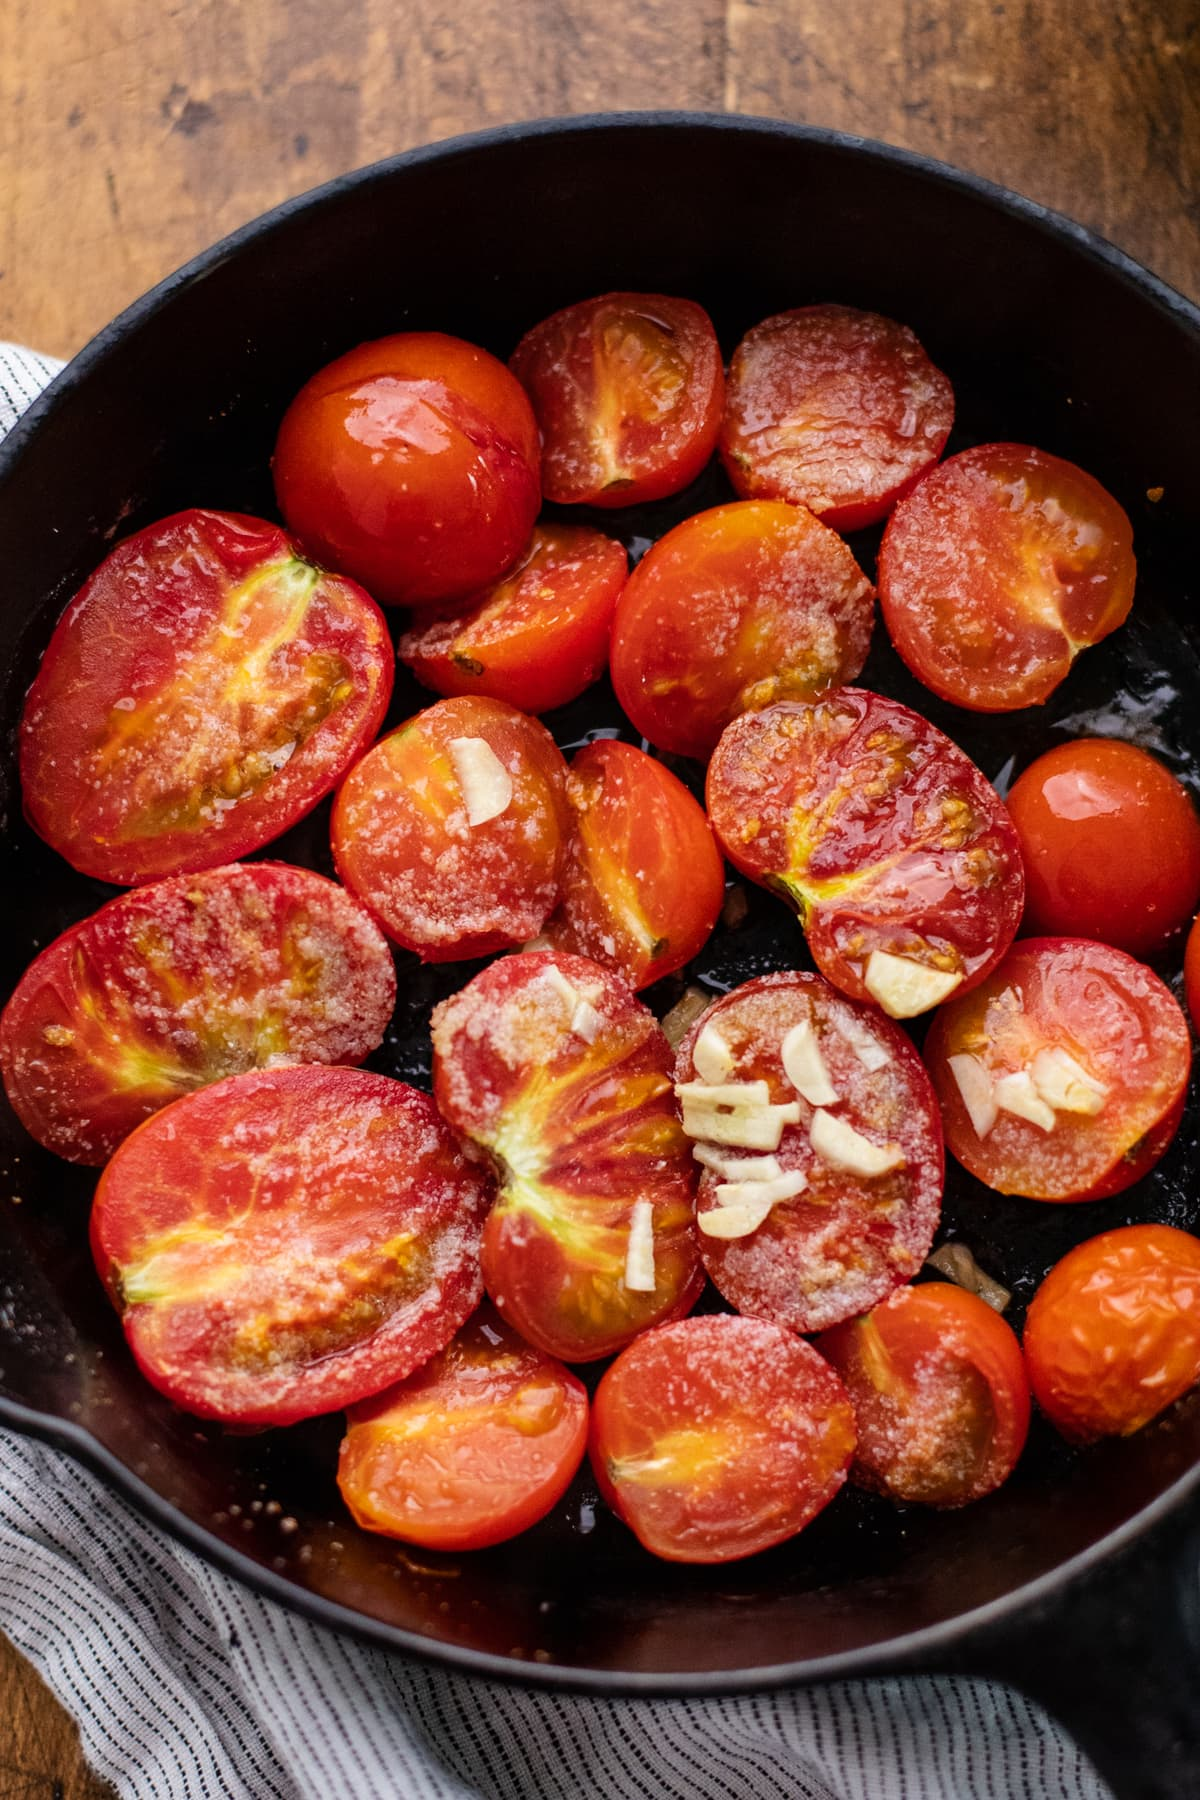 cast iron pan with roasted halved tomatoes in it on wooden background.